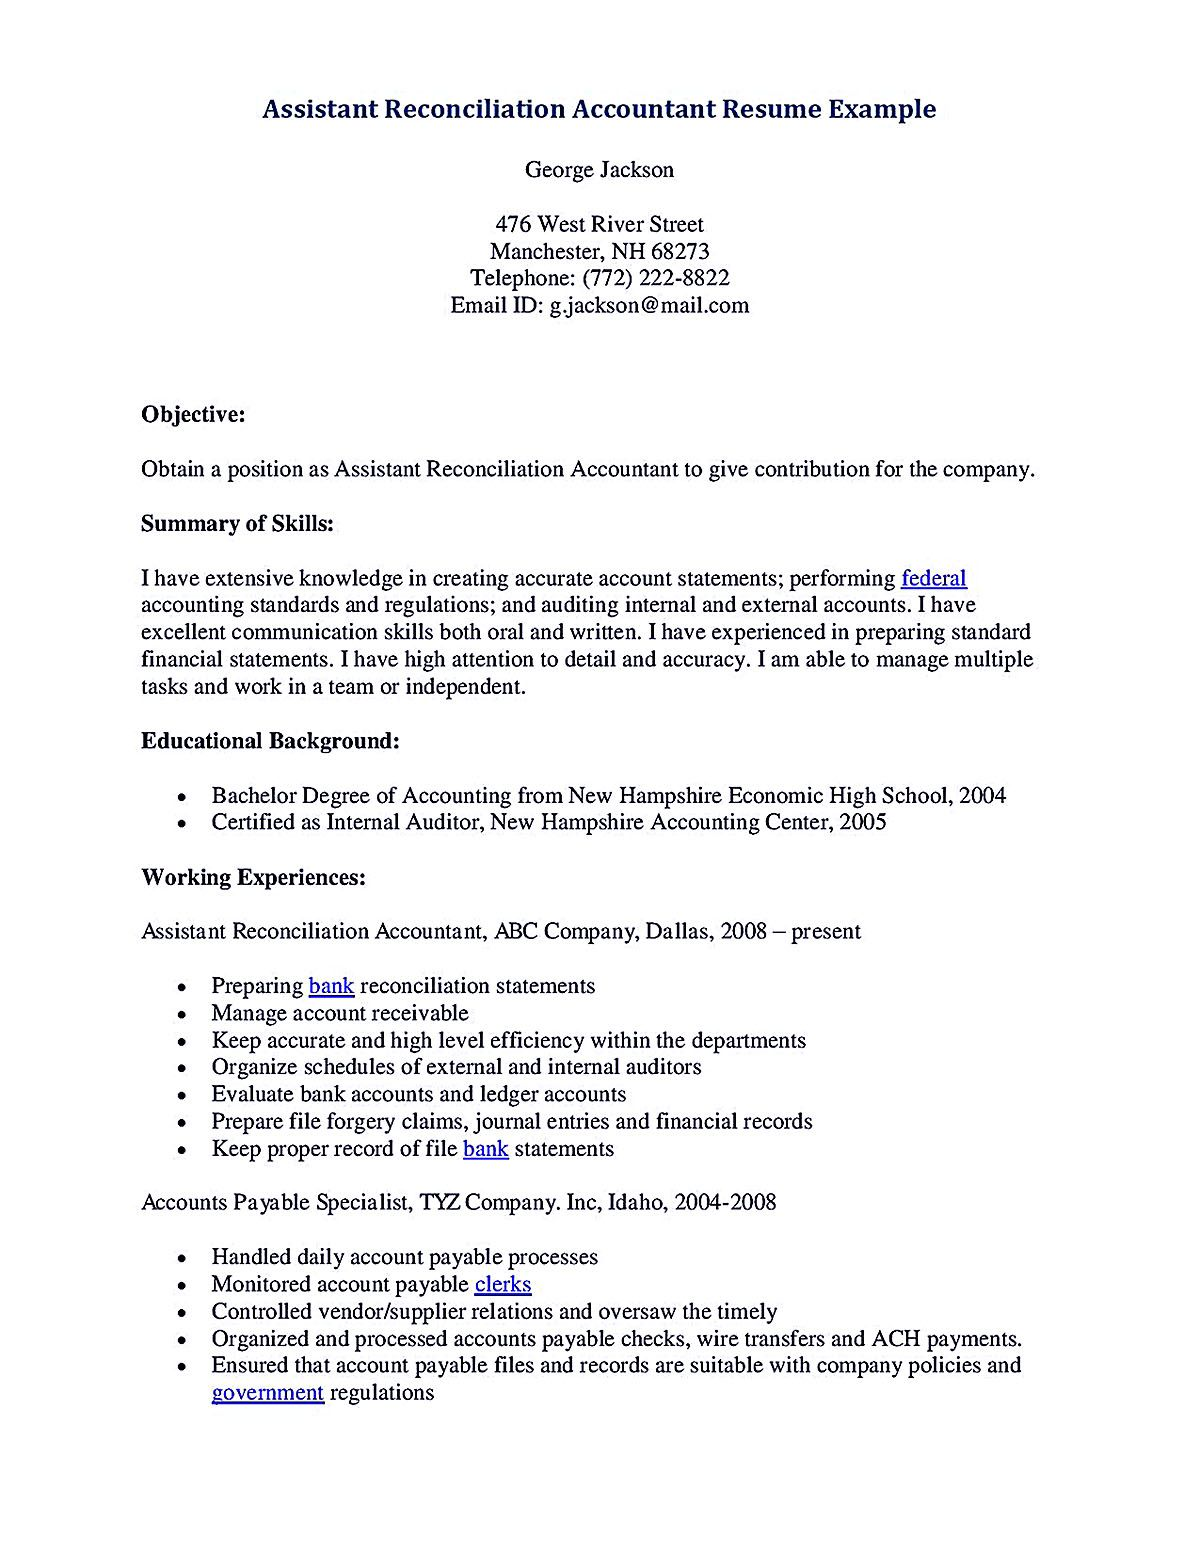 resume for accounting assistant whether or not accounting resume for accounting assistant whether or not accounting assistant resume can be successful depending on how